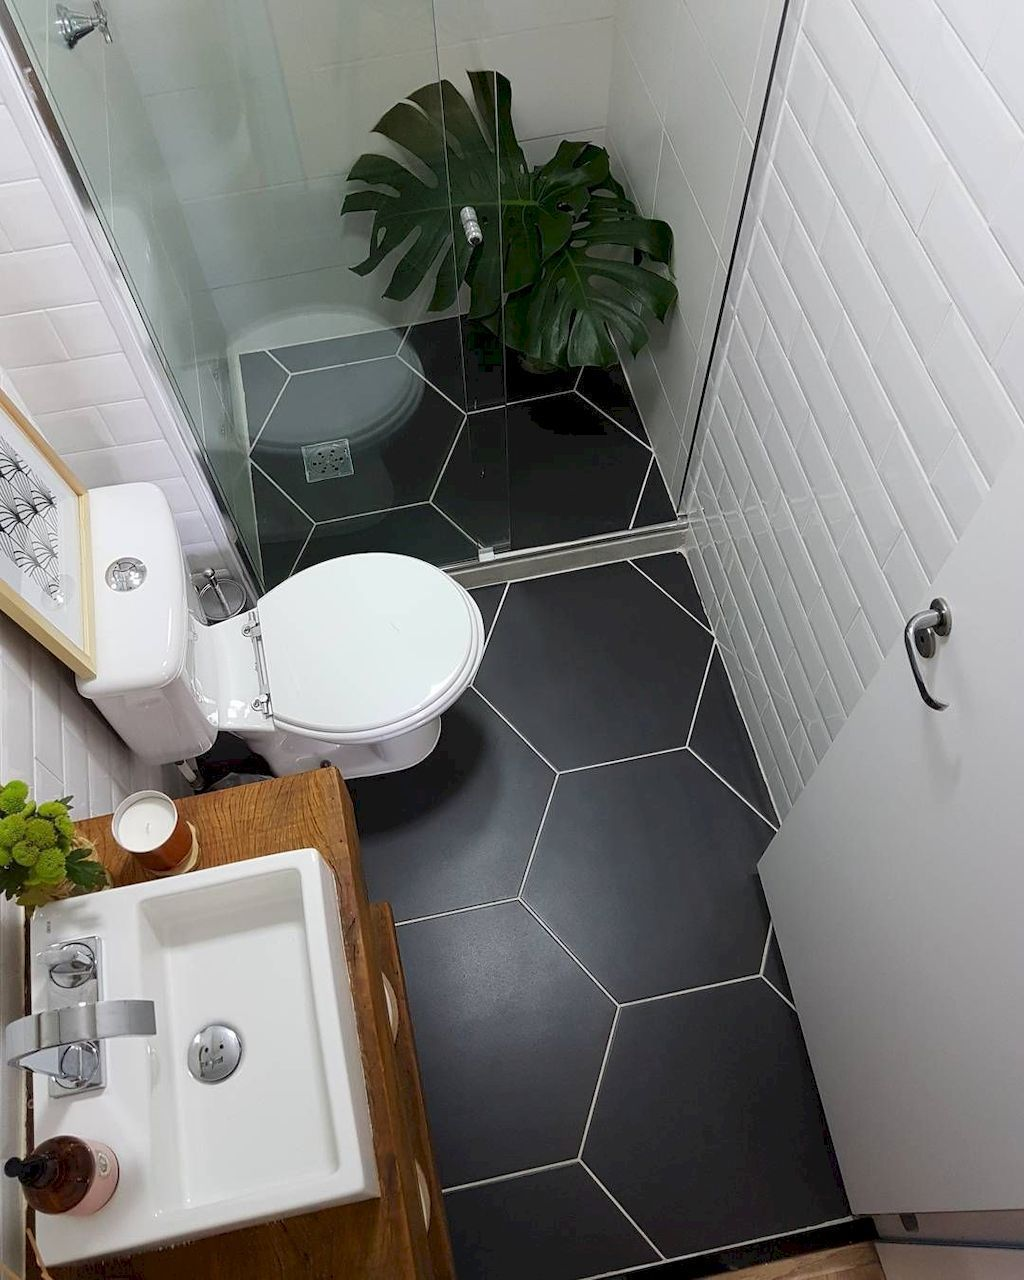 Bathroom tile ideas below is  collection of our favorite restroom inspirations as well layout setups see extra concepts concerning also affordable small design you must try rh pinterest